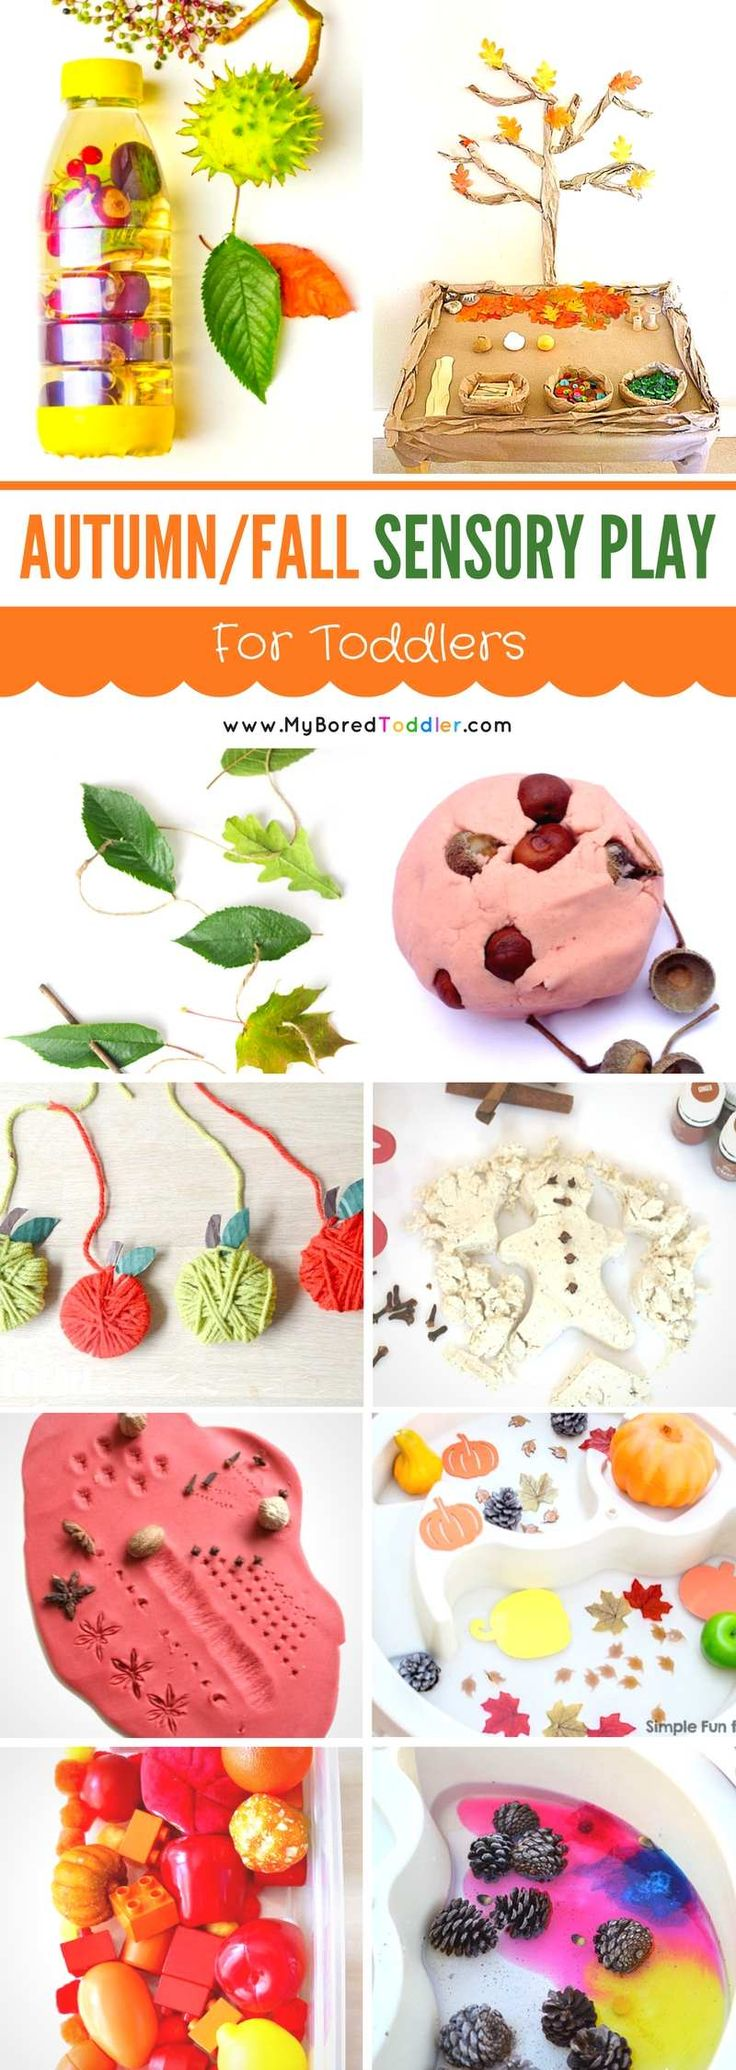 Celebrate the seasons with this autumn and fall sensory play for toddlers